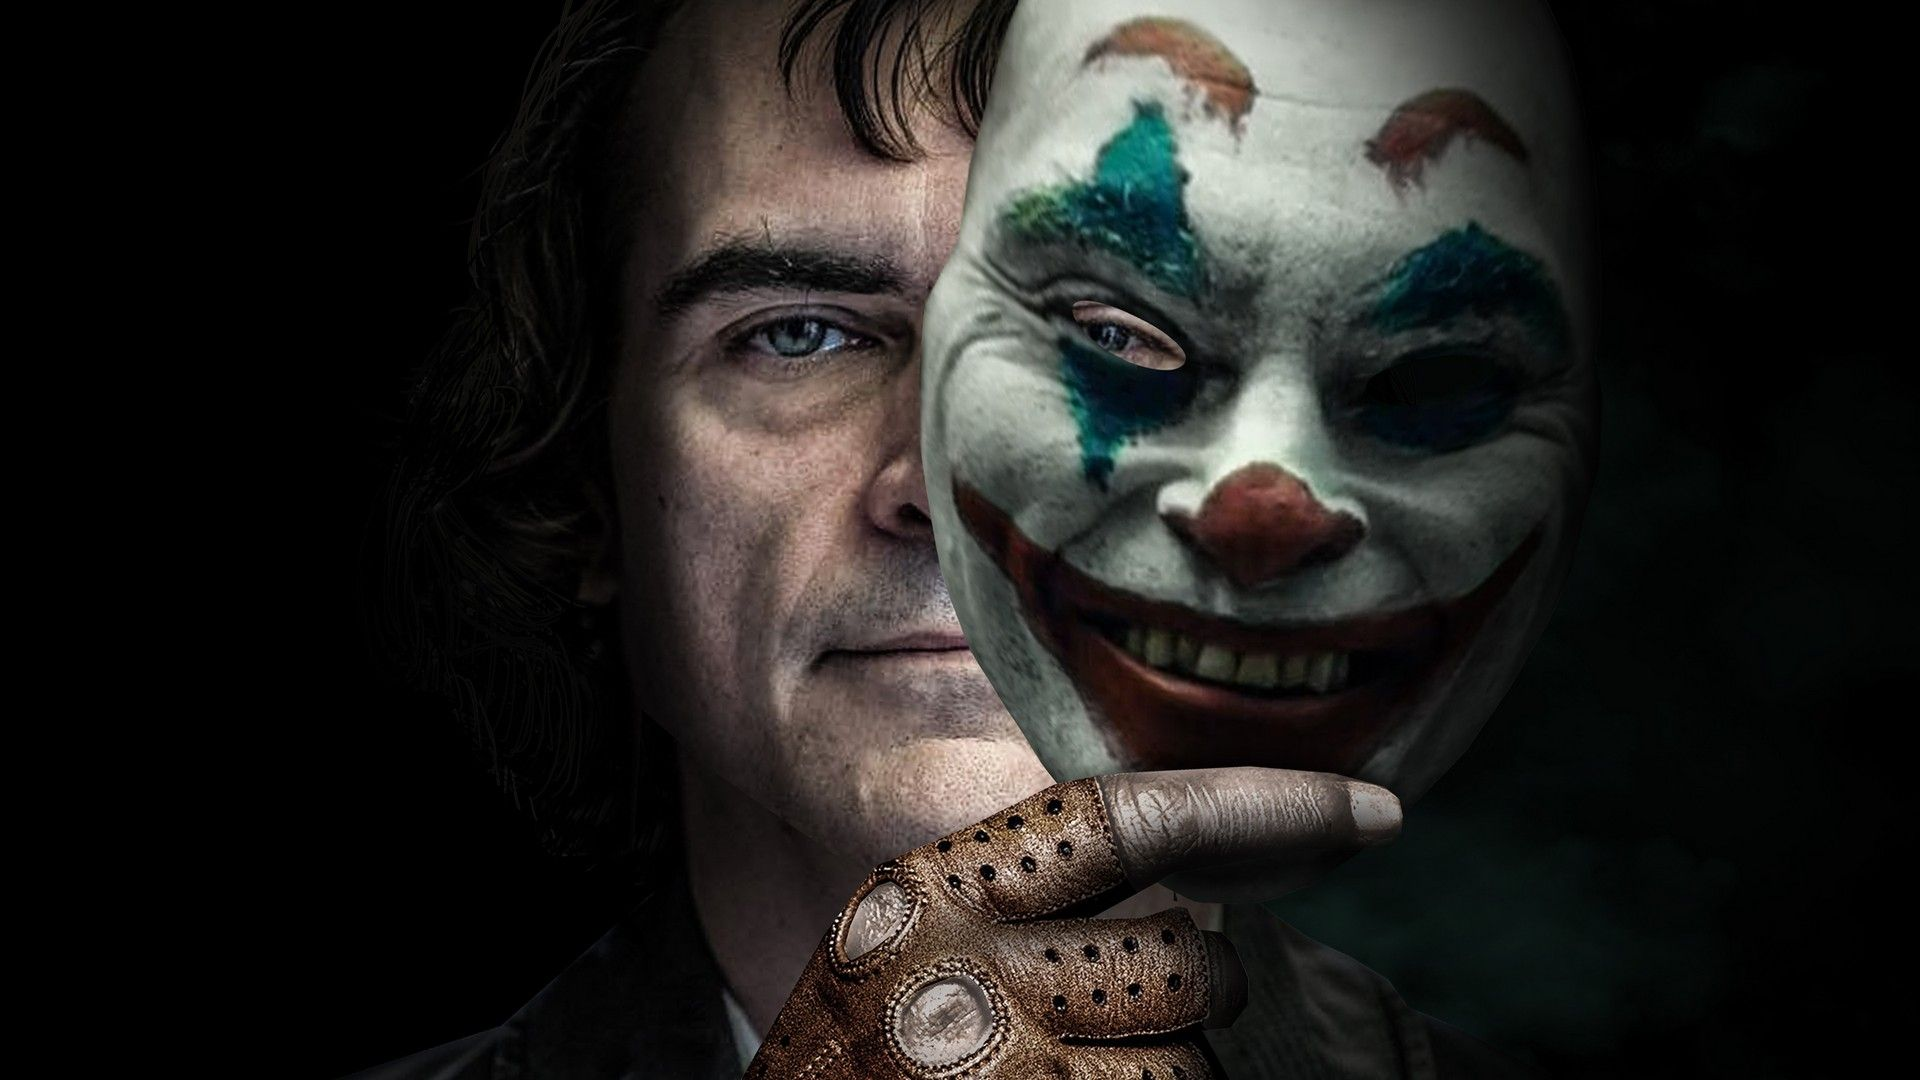 Joker 2019 Movie Wallpaper Best Movie Poster Wallpaper Hd Joker Wallpapers Joker Hd Wallpaper Joker